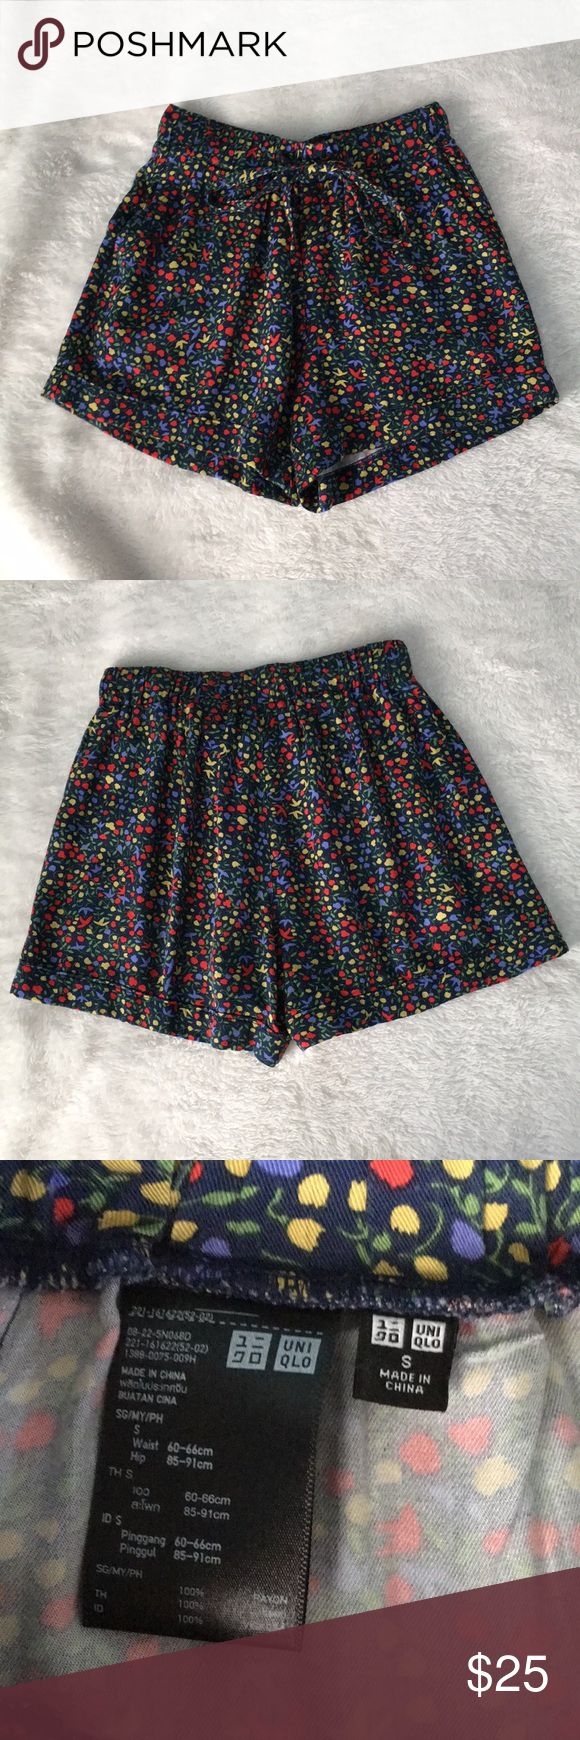 Cute floral patterned shorts from uniqlo Navy shorts with cute floral pattern. It has an adjustable drawstring and pockets. Size small. Only worn once Uniqlo Shorts